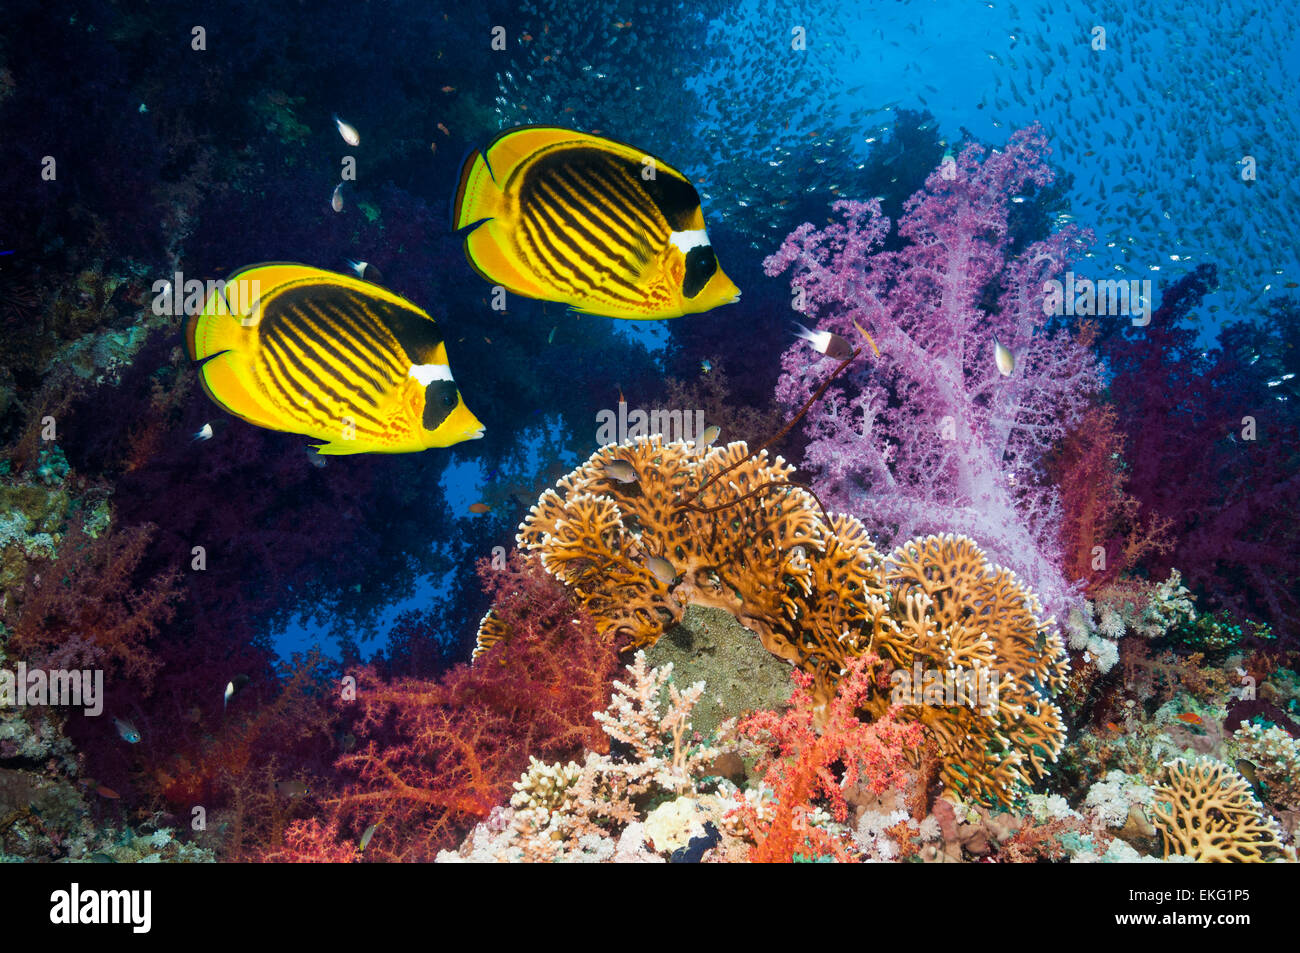 Coral reef scenery with Red Sea raccoon butterflyfish [Chaetodon fasciatus] and soft corals (Dendronephthya sp). - Stock Image